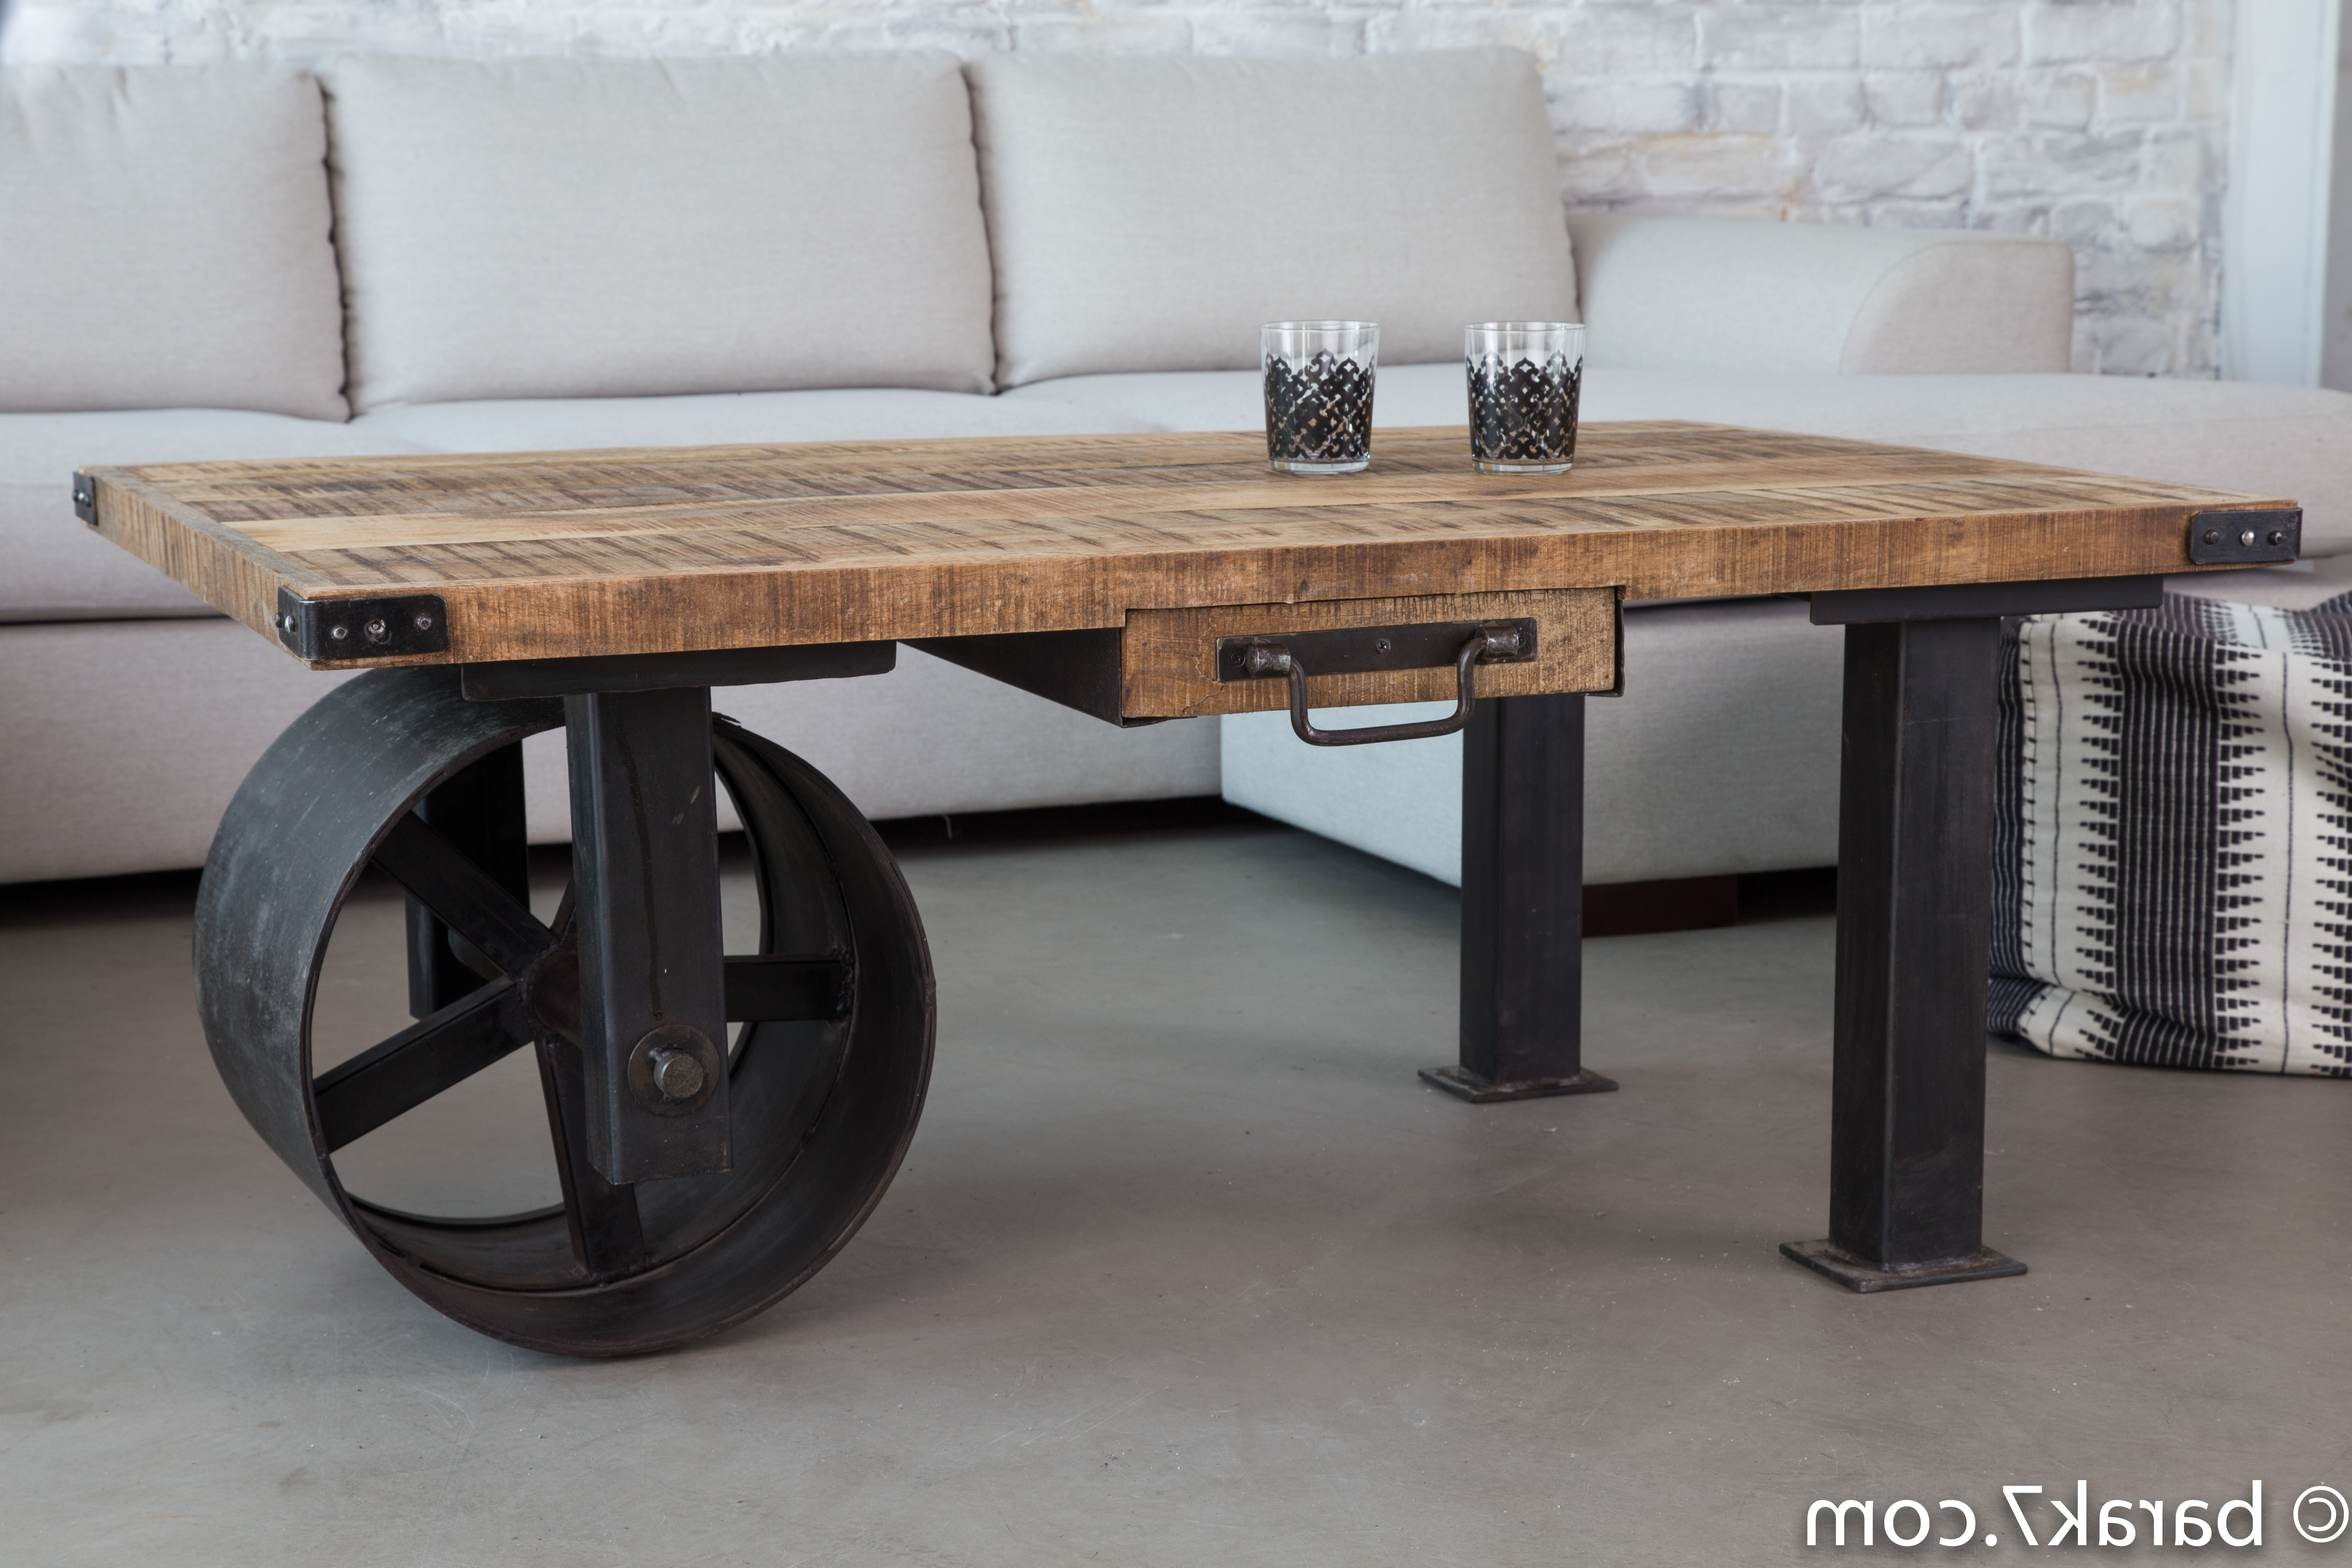 New Industrial Style Furniture Range From Barak'7 – The Art Of Within 2018 Iron Wood Coffee Tables With Wheels (View 20 of 20)